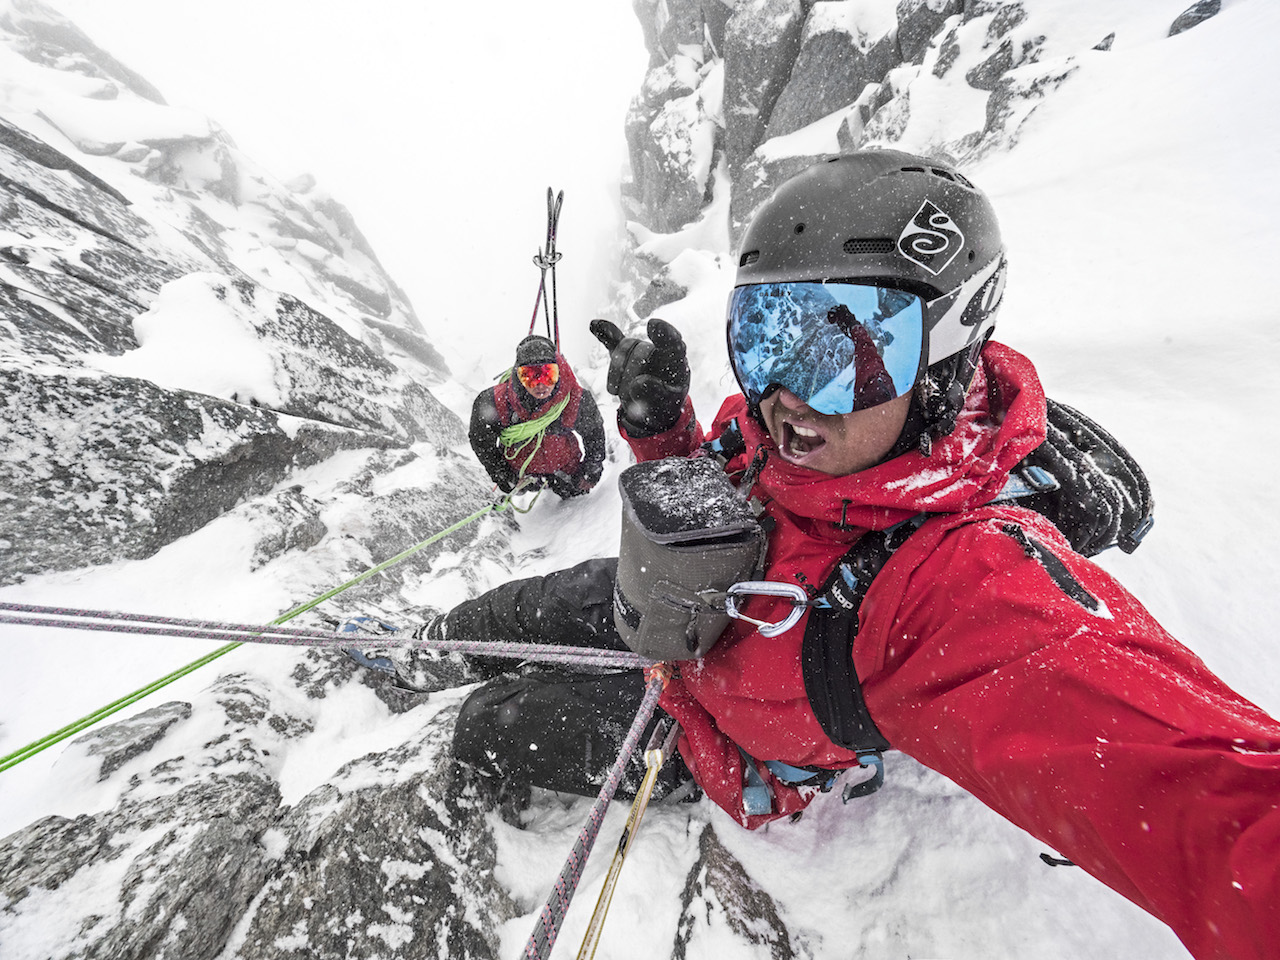 WHY CARRY CRAMPONS